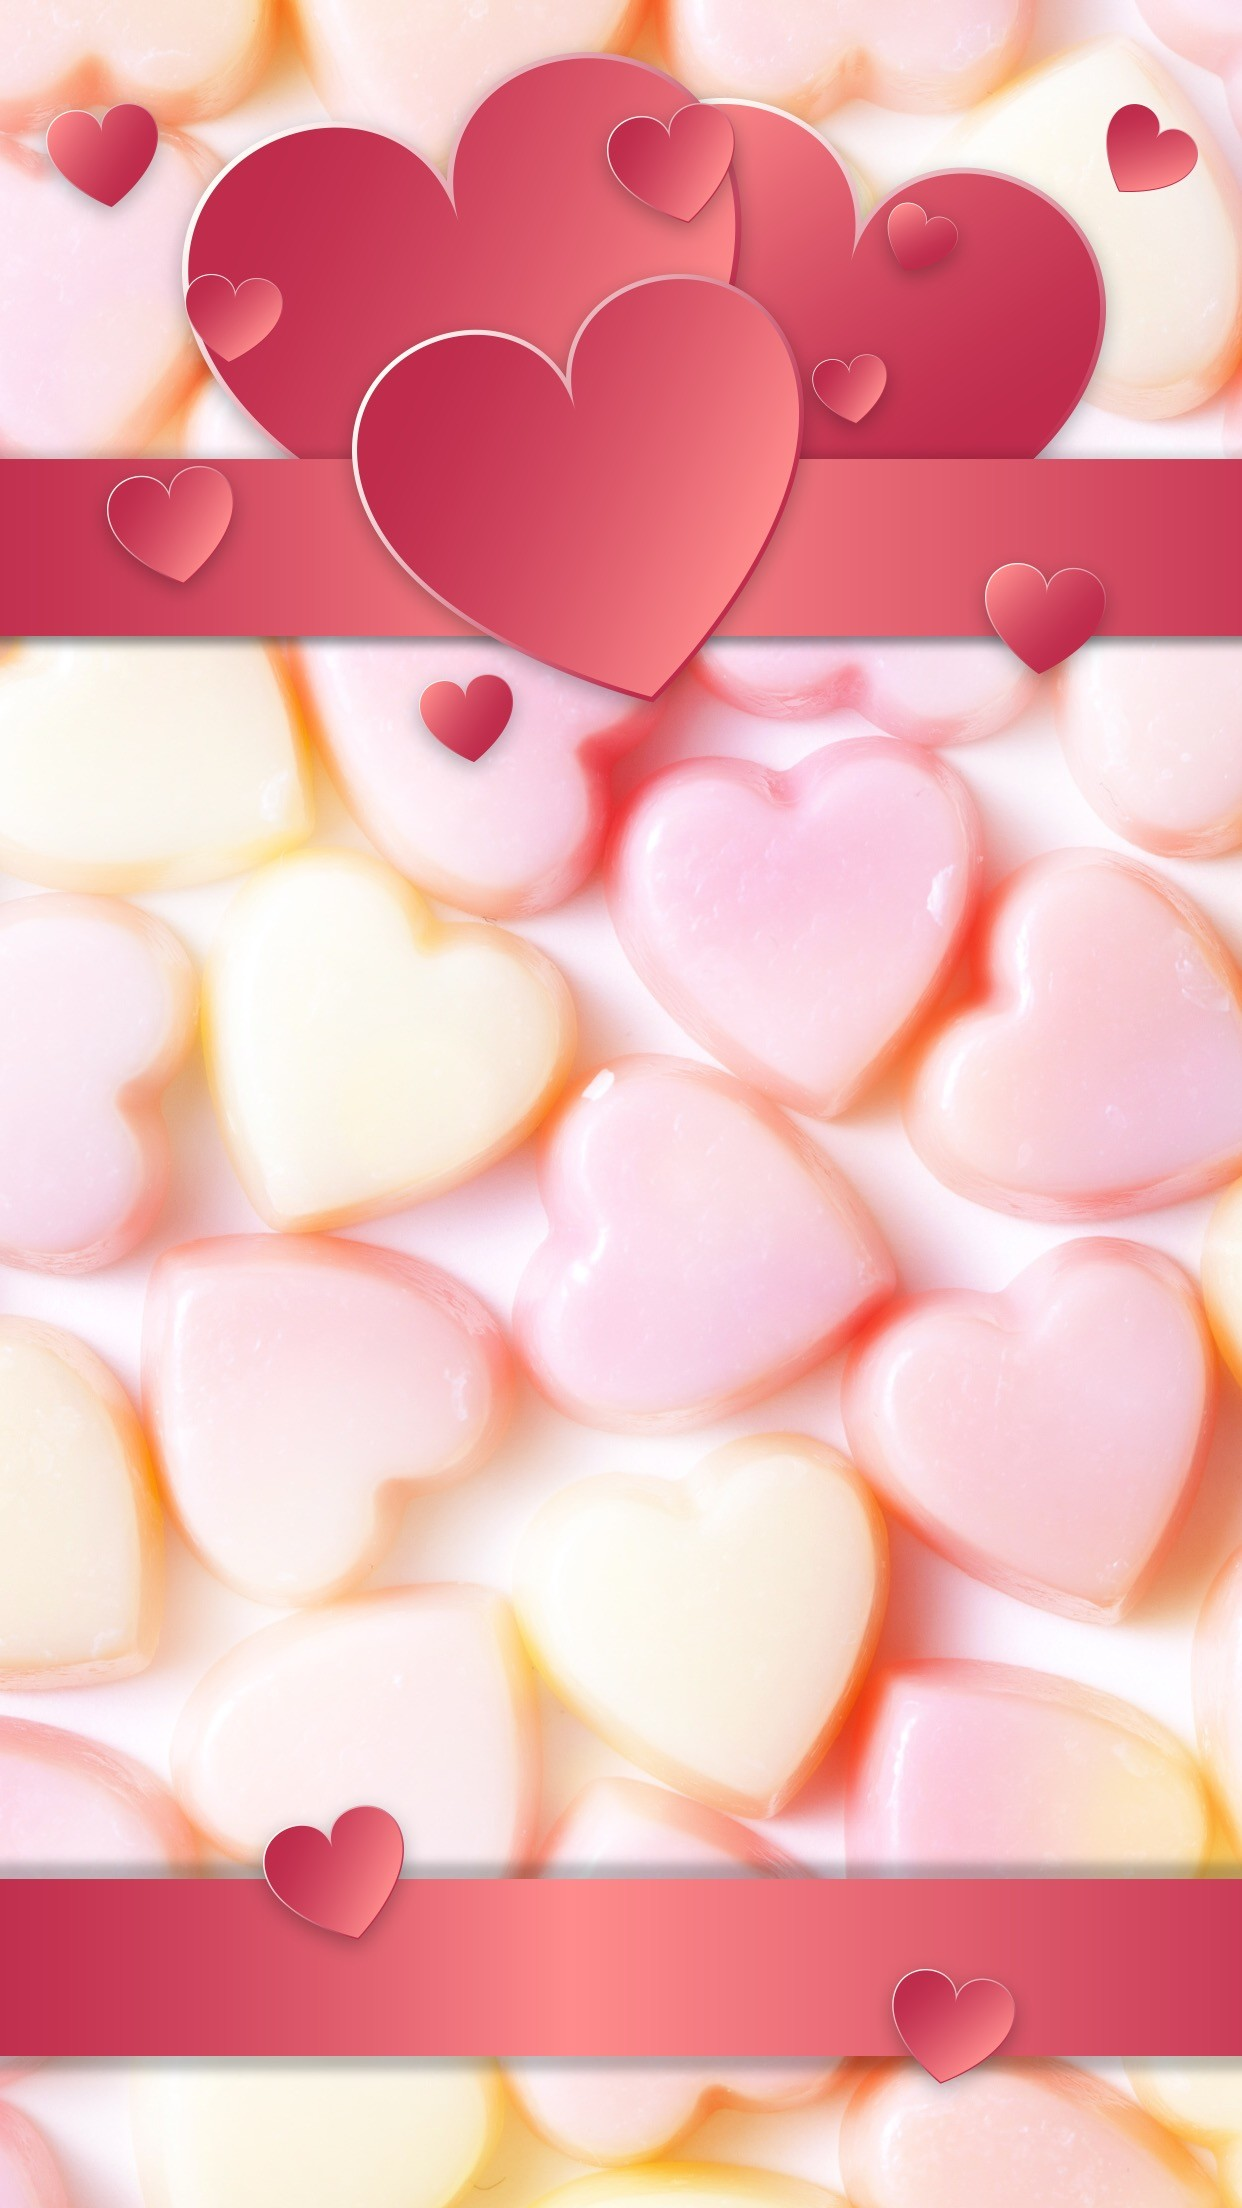 Iphone Backgrounds, Wallpaper Backgrounds, Wallpapers, Sweet Hearts,  Marketing Ideas, Valentines, Pictures, Funds